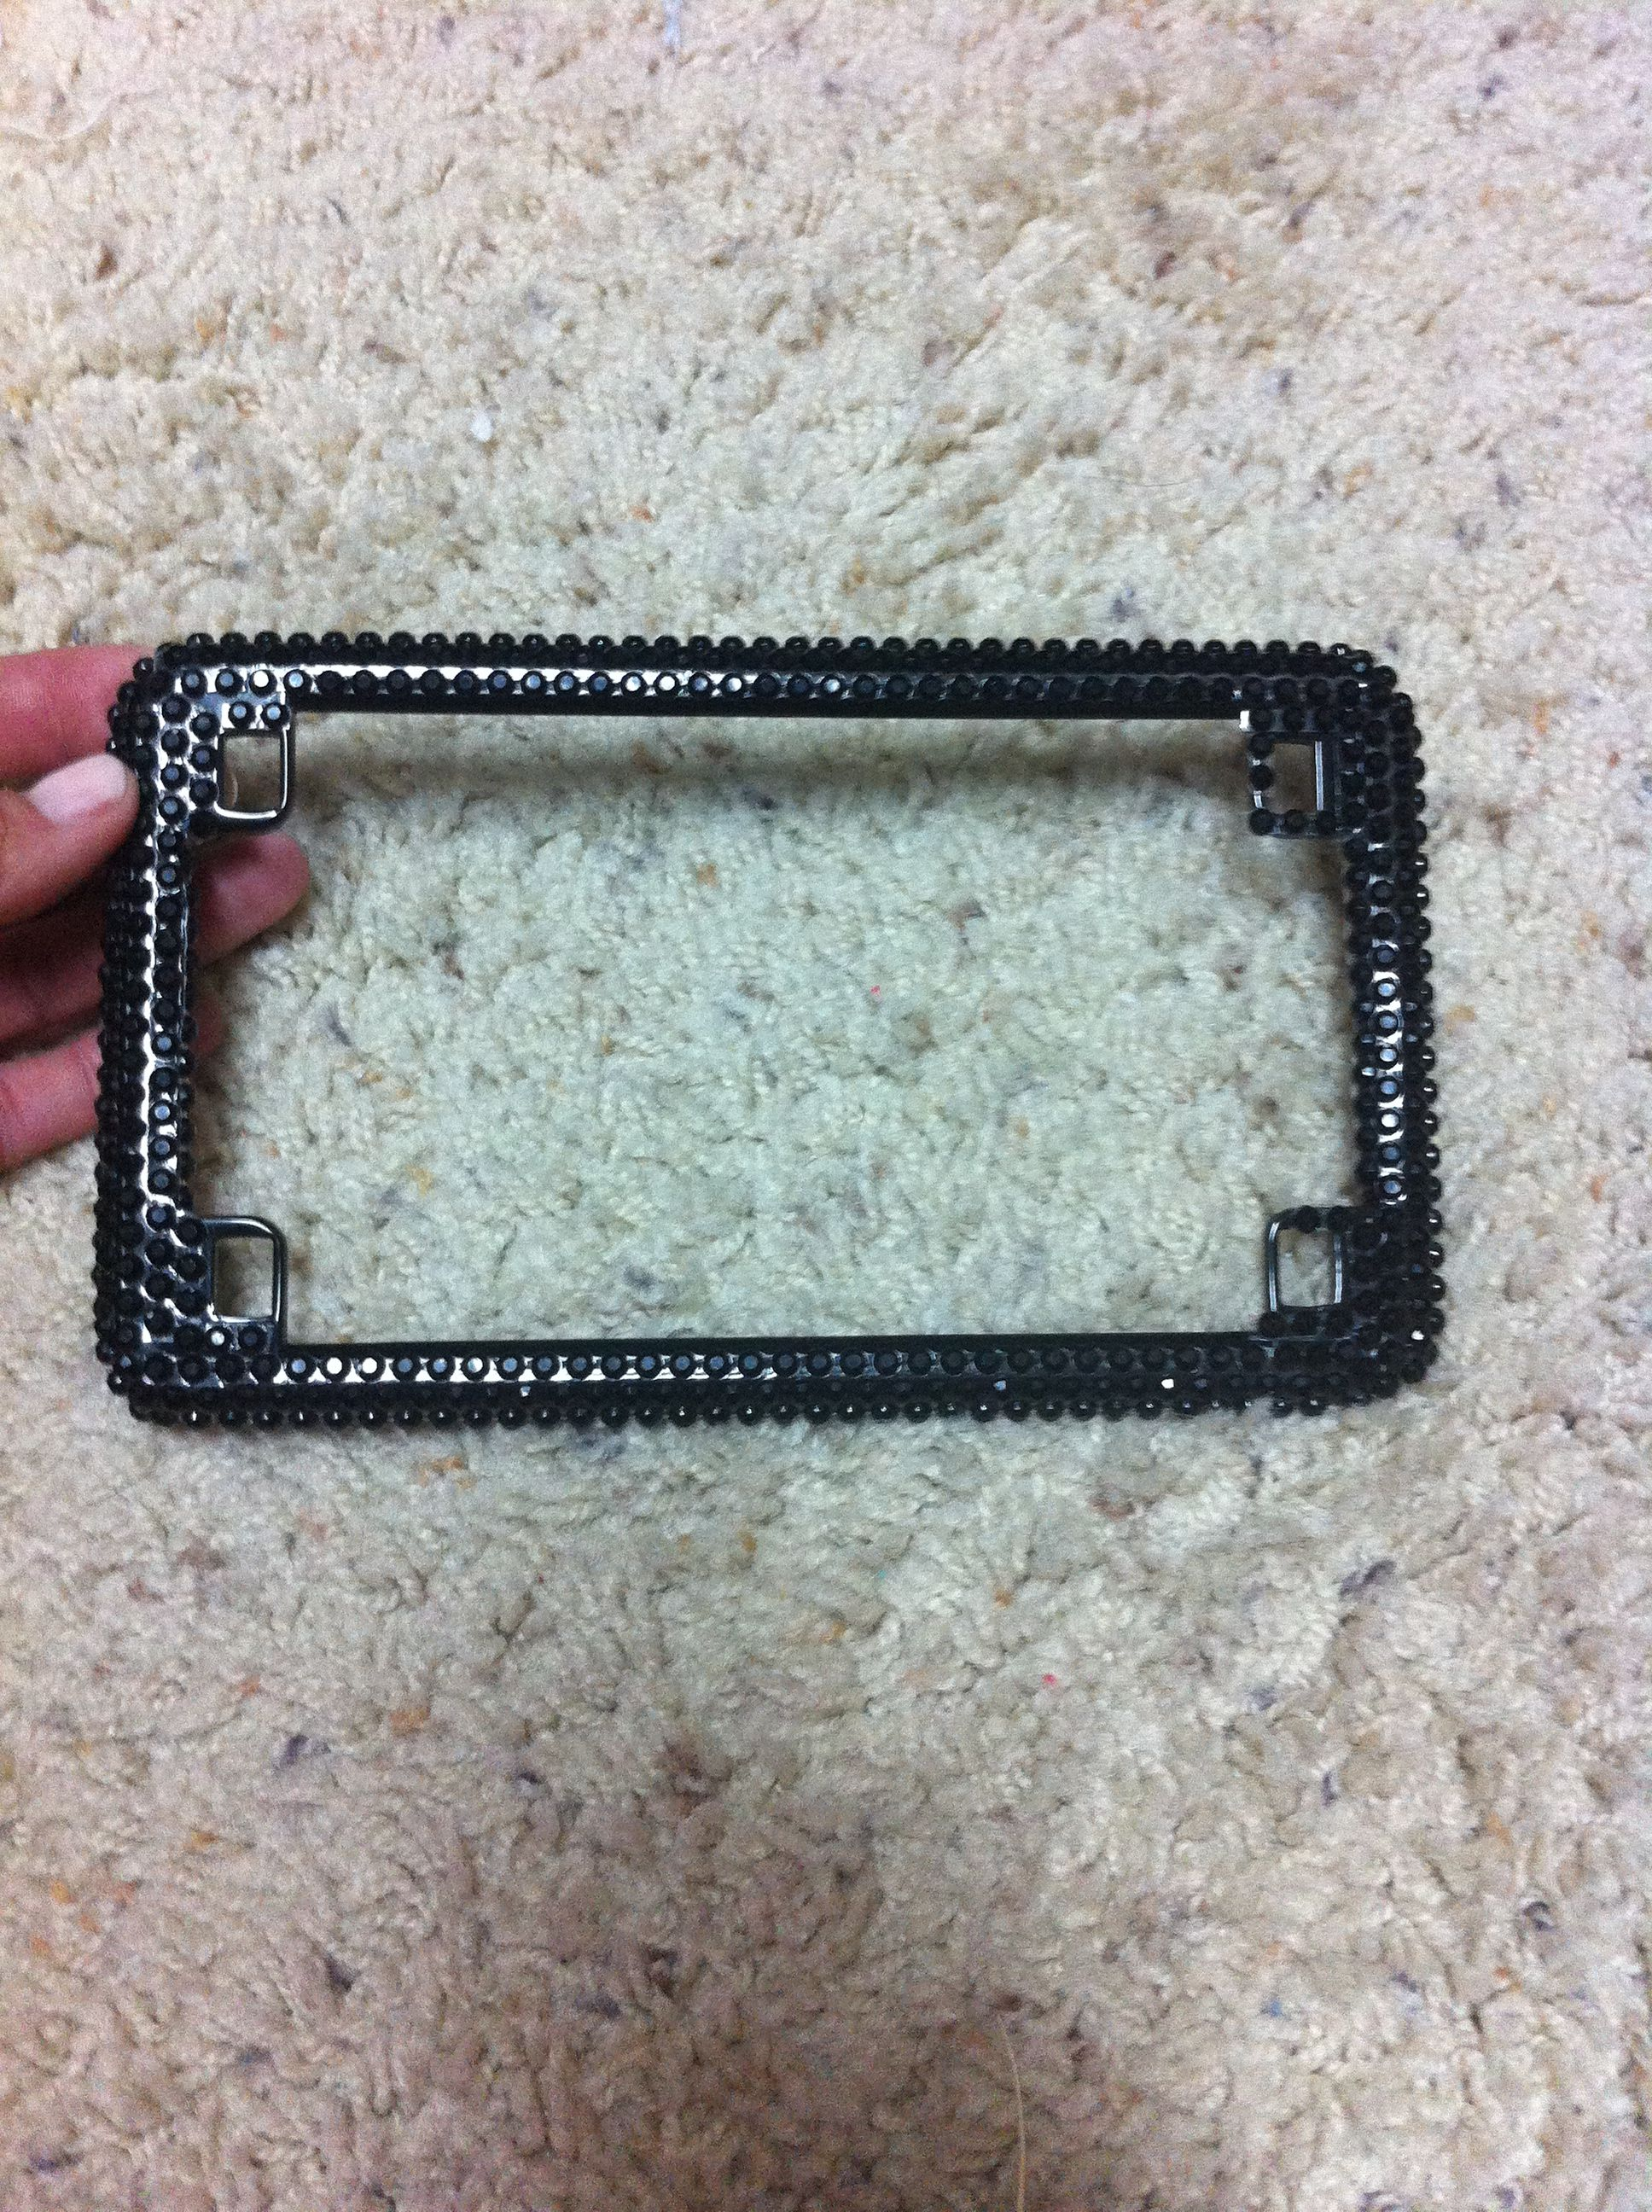 Blinged out my motorcycle license plate frame. Screw It